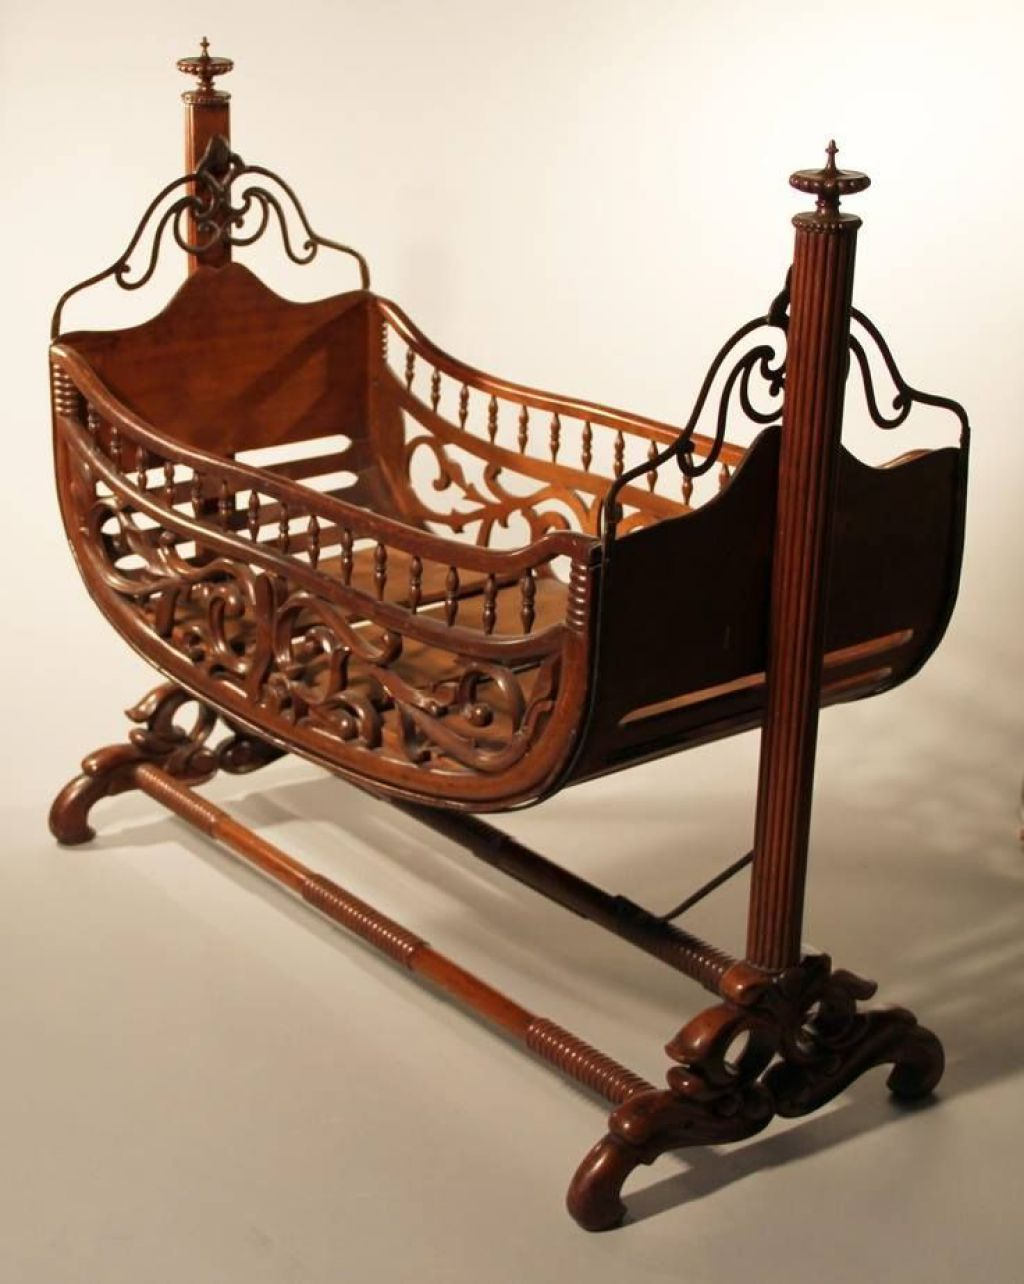 Amazing Carved Wooden Swinging Crib Adorable Swinging Crib For Your Baby Art Nouveau Furniture Victorian Furniture Antiques